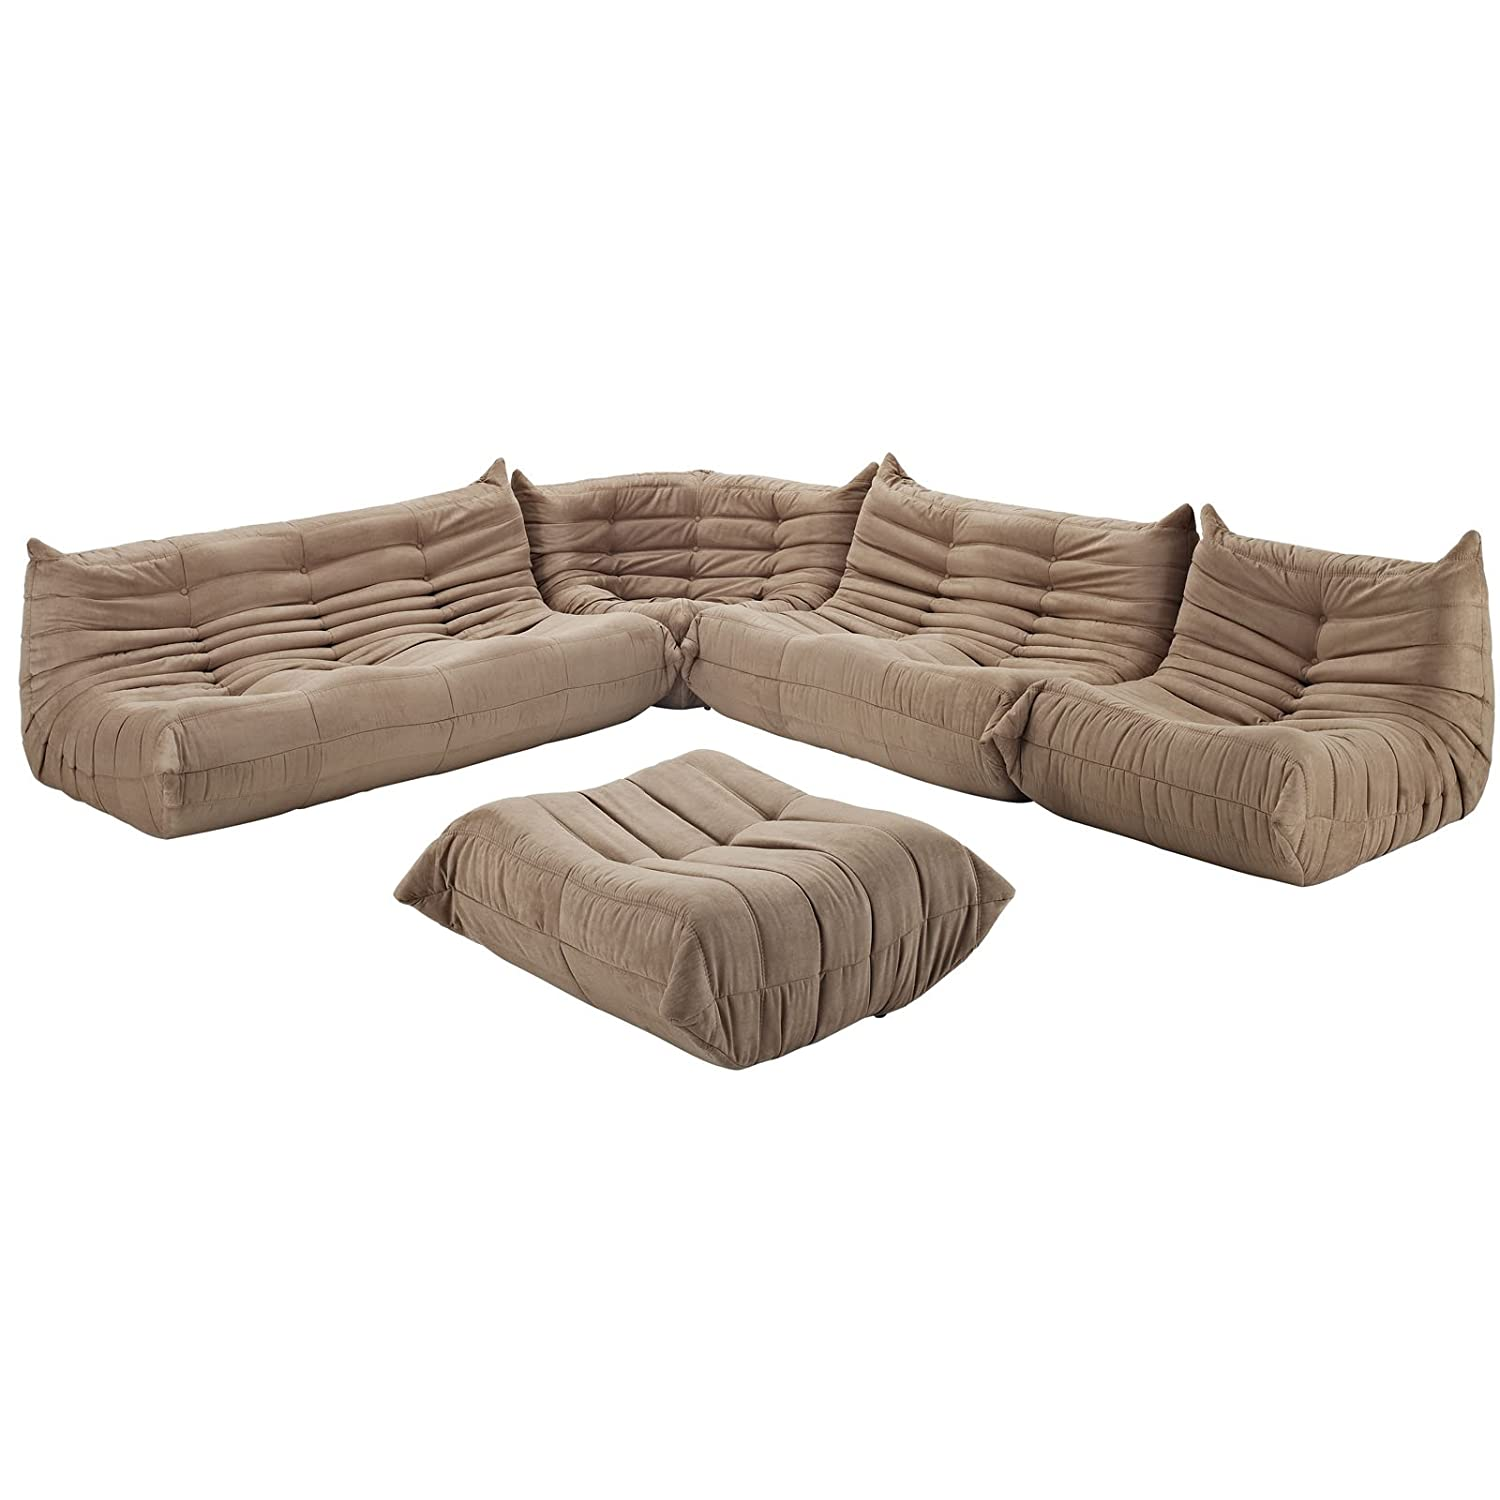 Amazon.com: Modway Modern Waverunner Modular Sectional Sofa Set, Brown,  5 Piece: Kitchen U0026 Dining